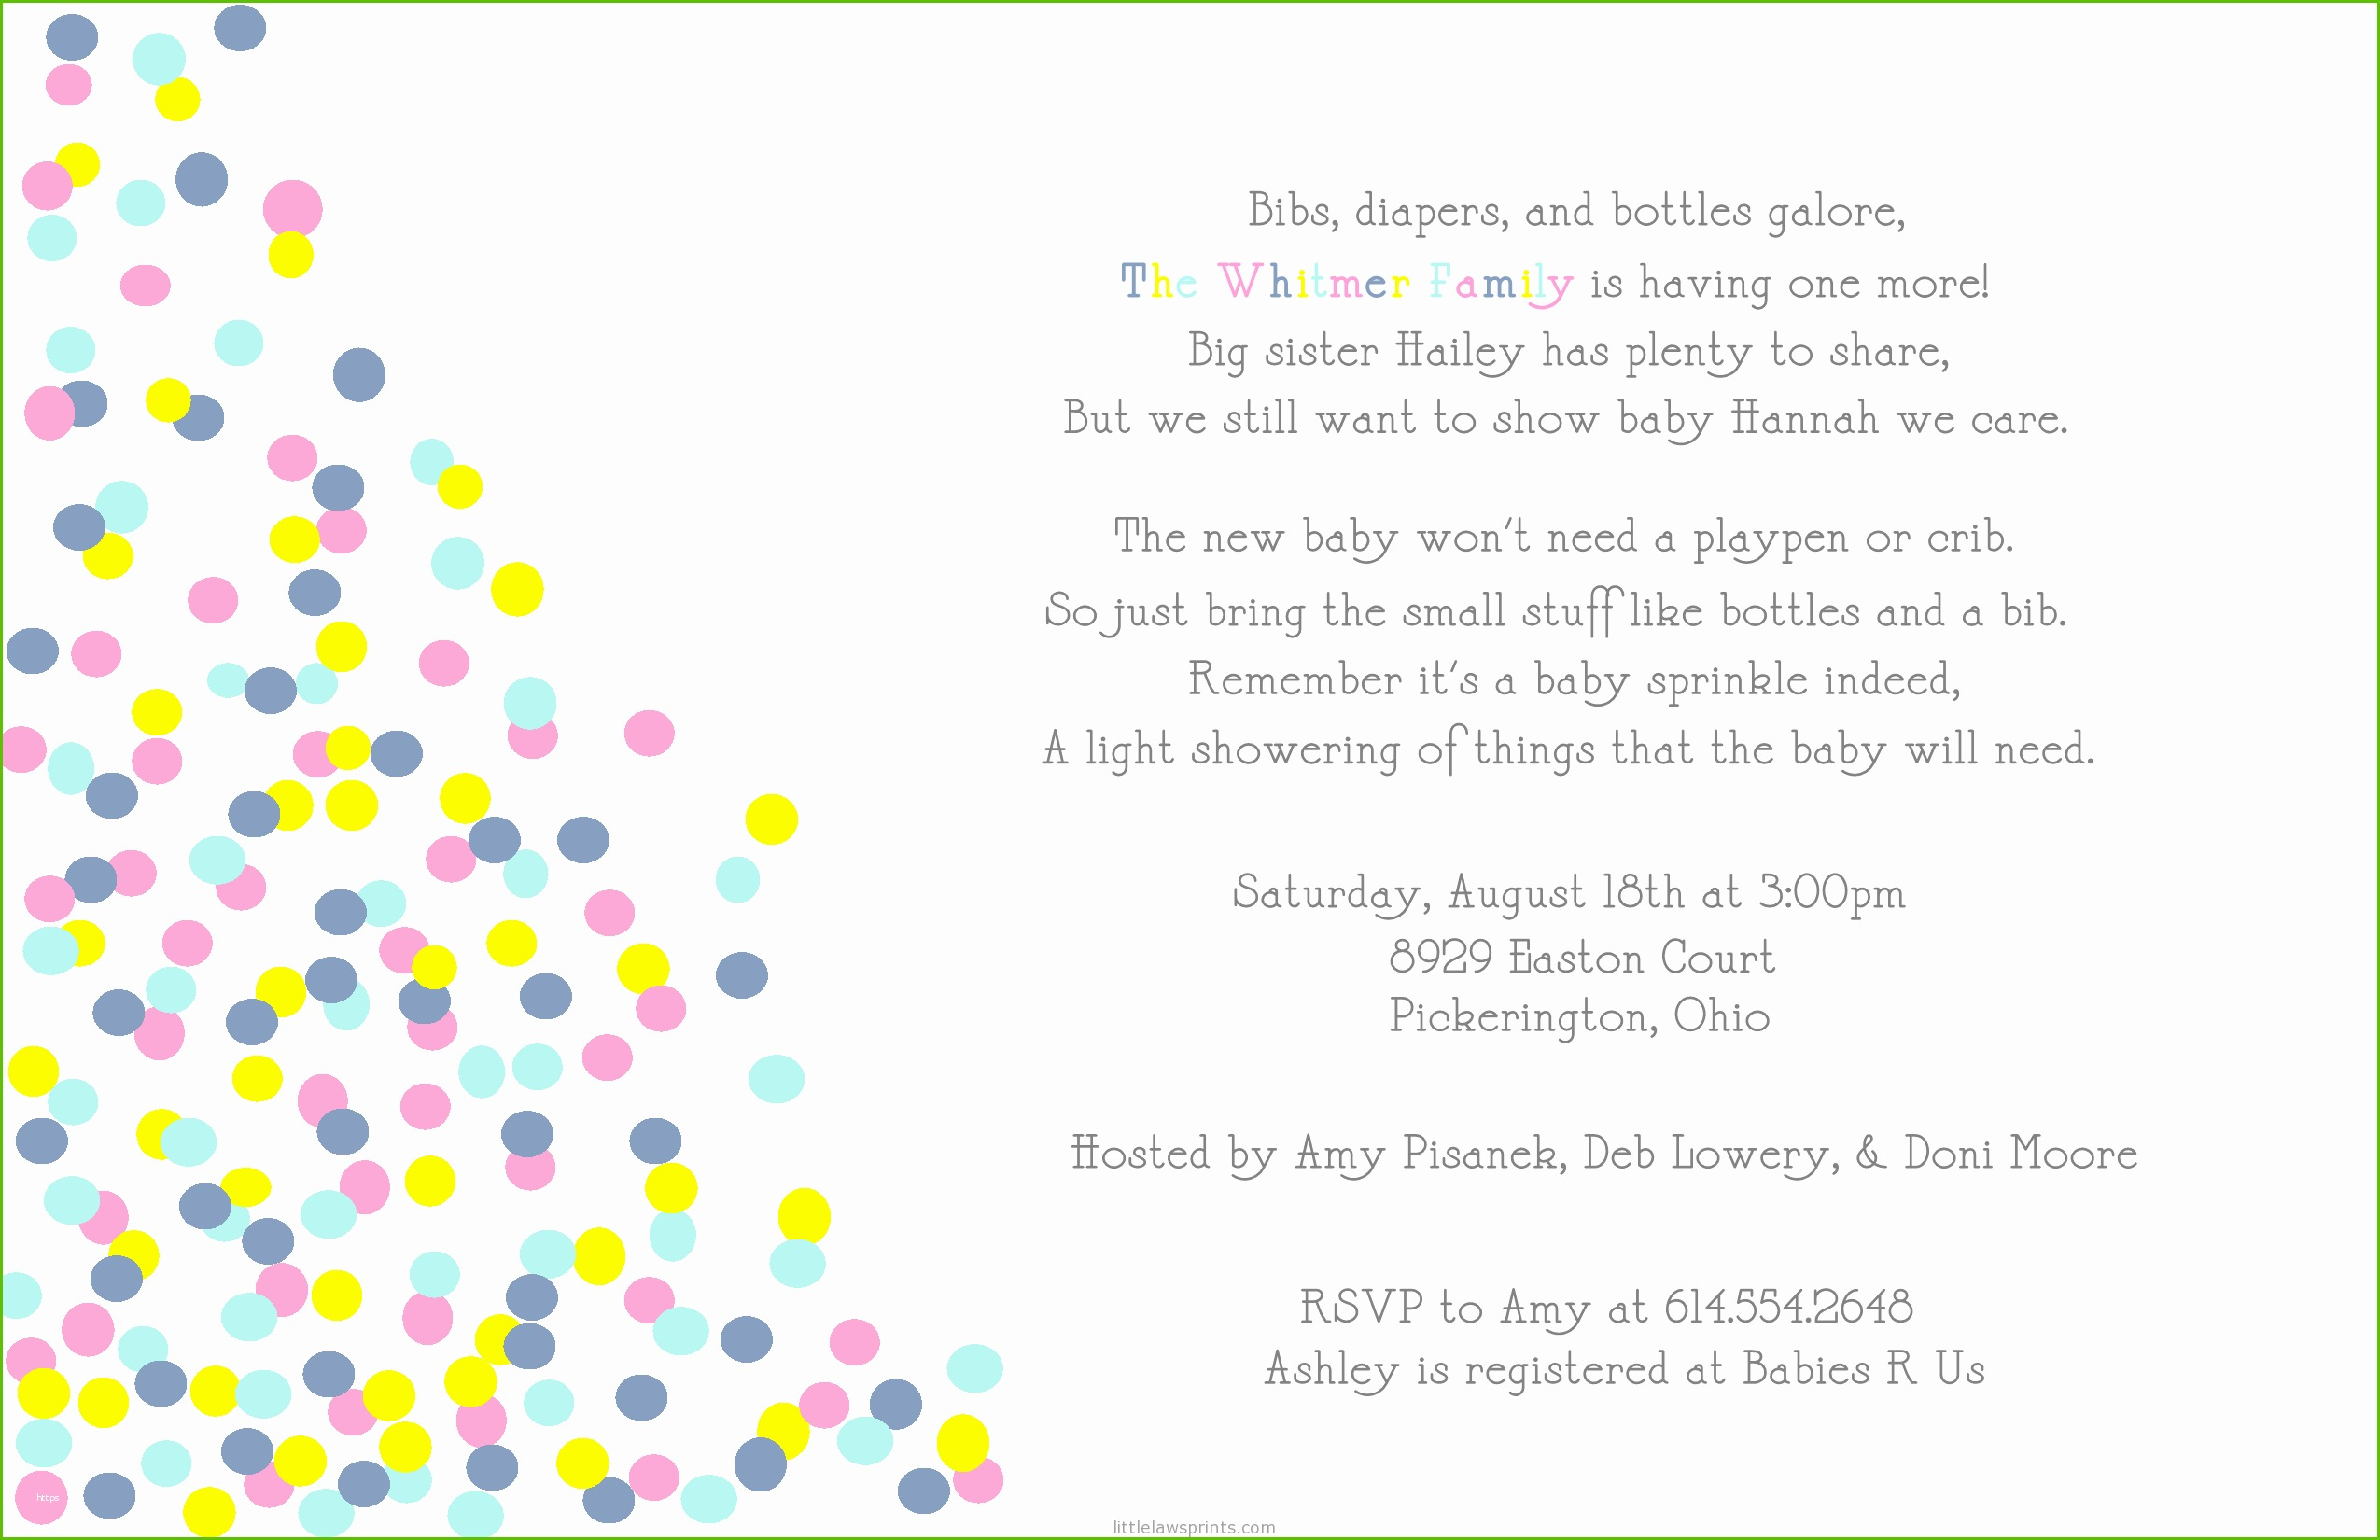 Full Size of Baby Shower:baby Shower Halls With Baby Shower At The Park Plus Recuerdos De Baby Shower Together With Fun Baby Shower Games As Well As Baby Shower Hostess Gifts And Baby Shower Verses Baby Shower Invitation Wording As Well As Baby Shower Event With Baby Shower At The Park Plus Printable Baby Shower Cards Together With Baby Shower Hampers